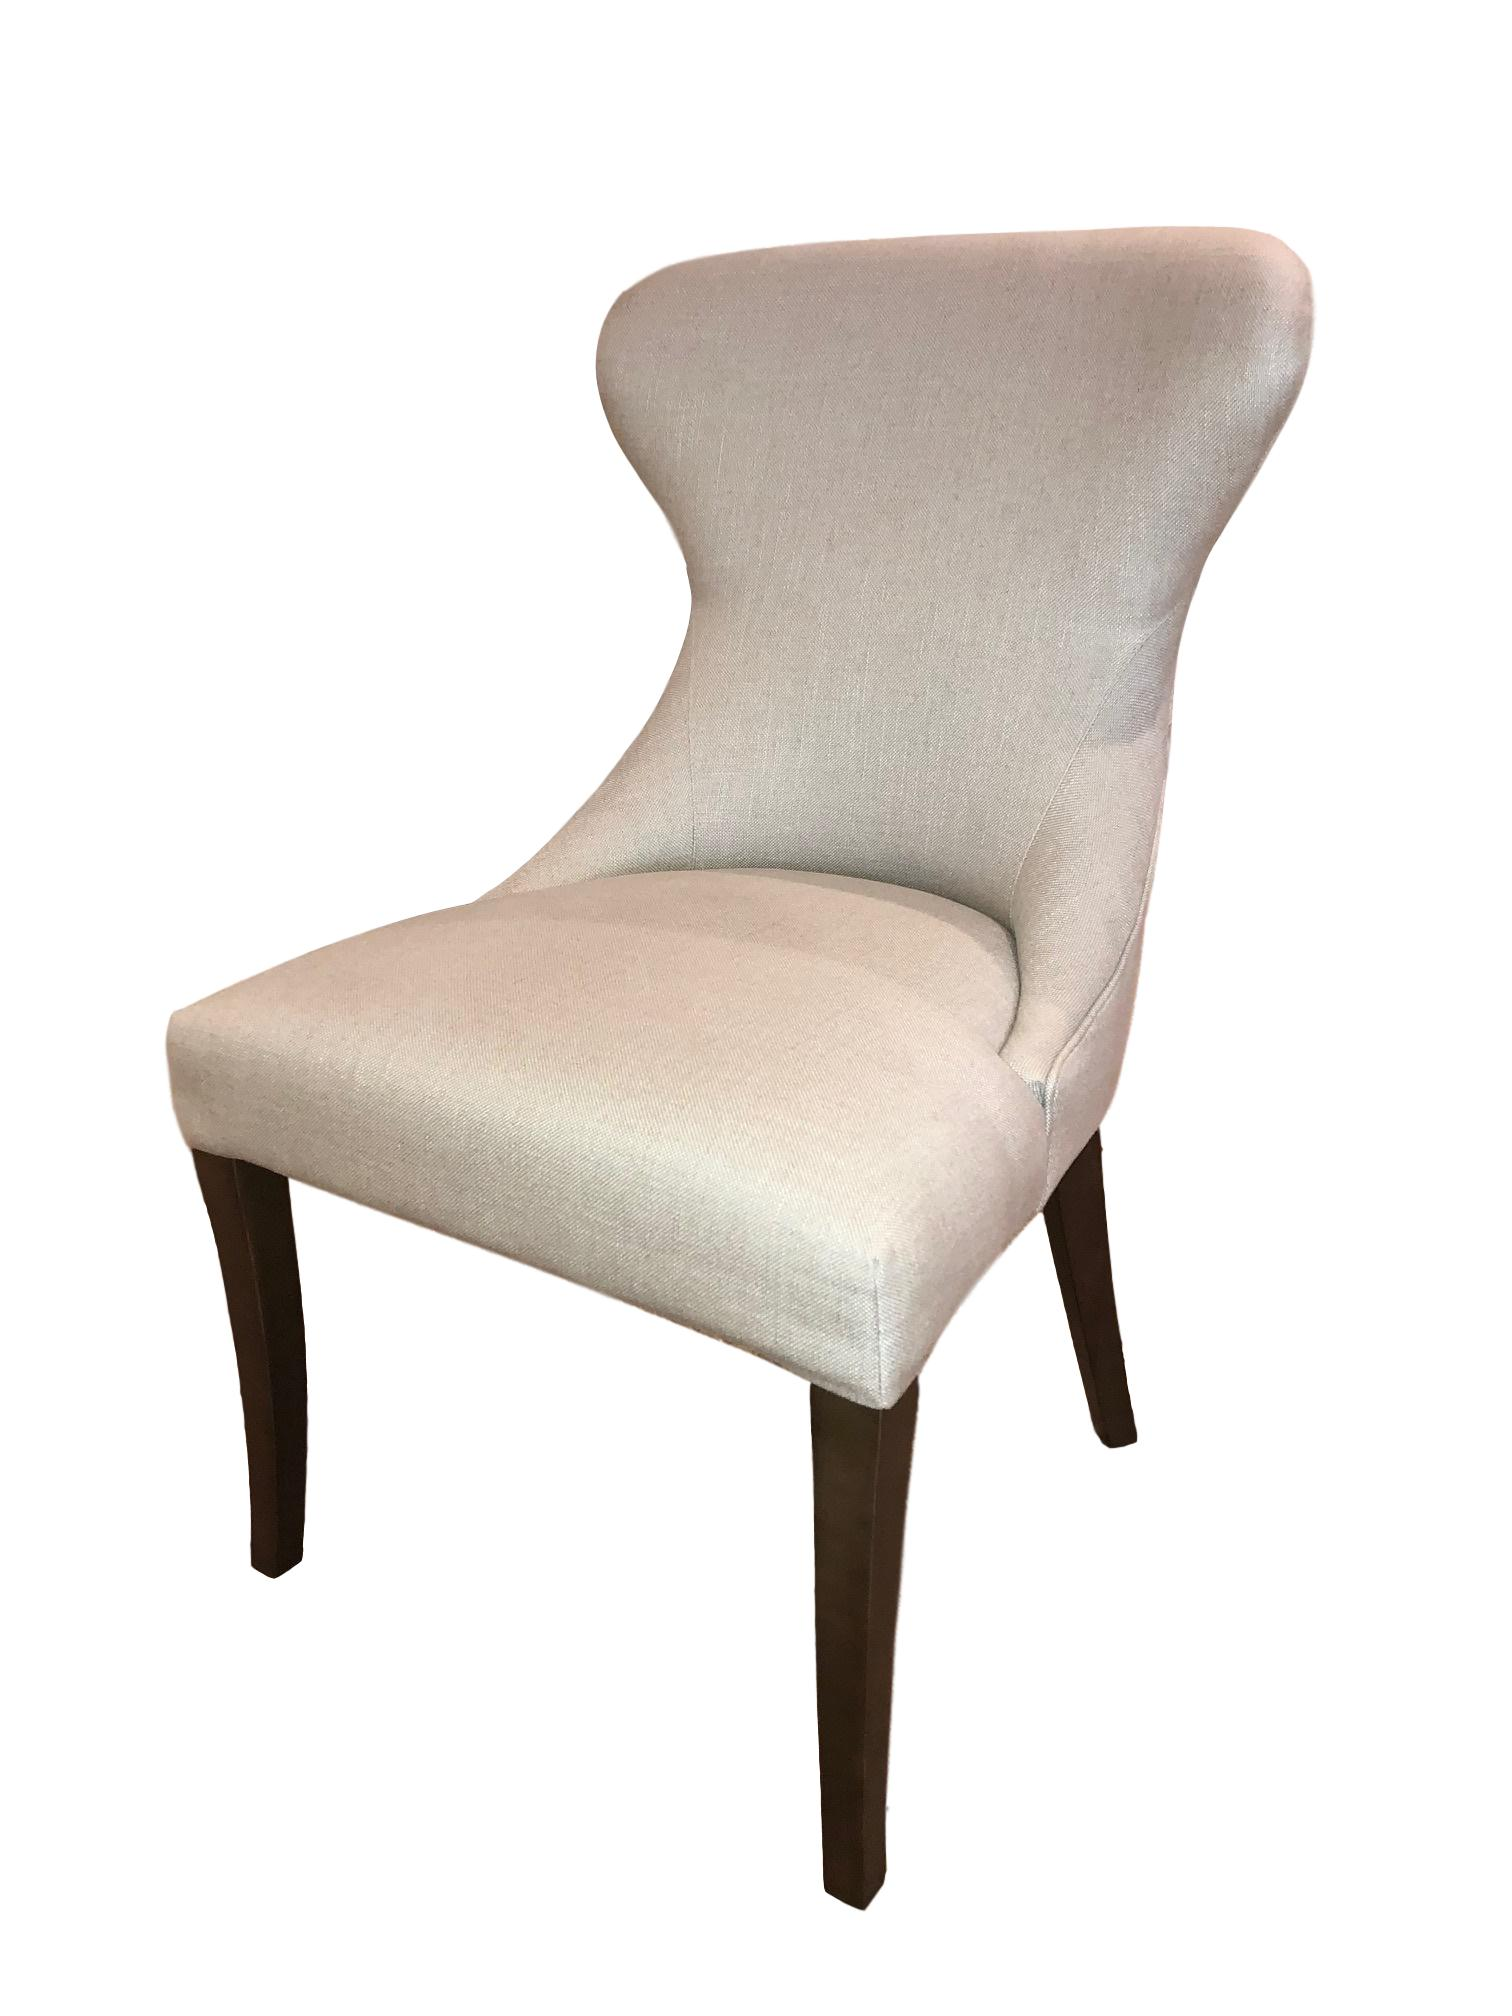 5663-01 Dining Side Chair